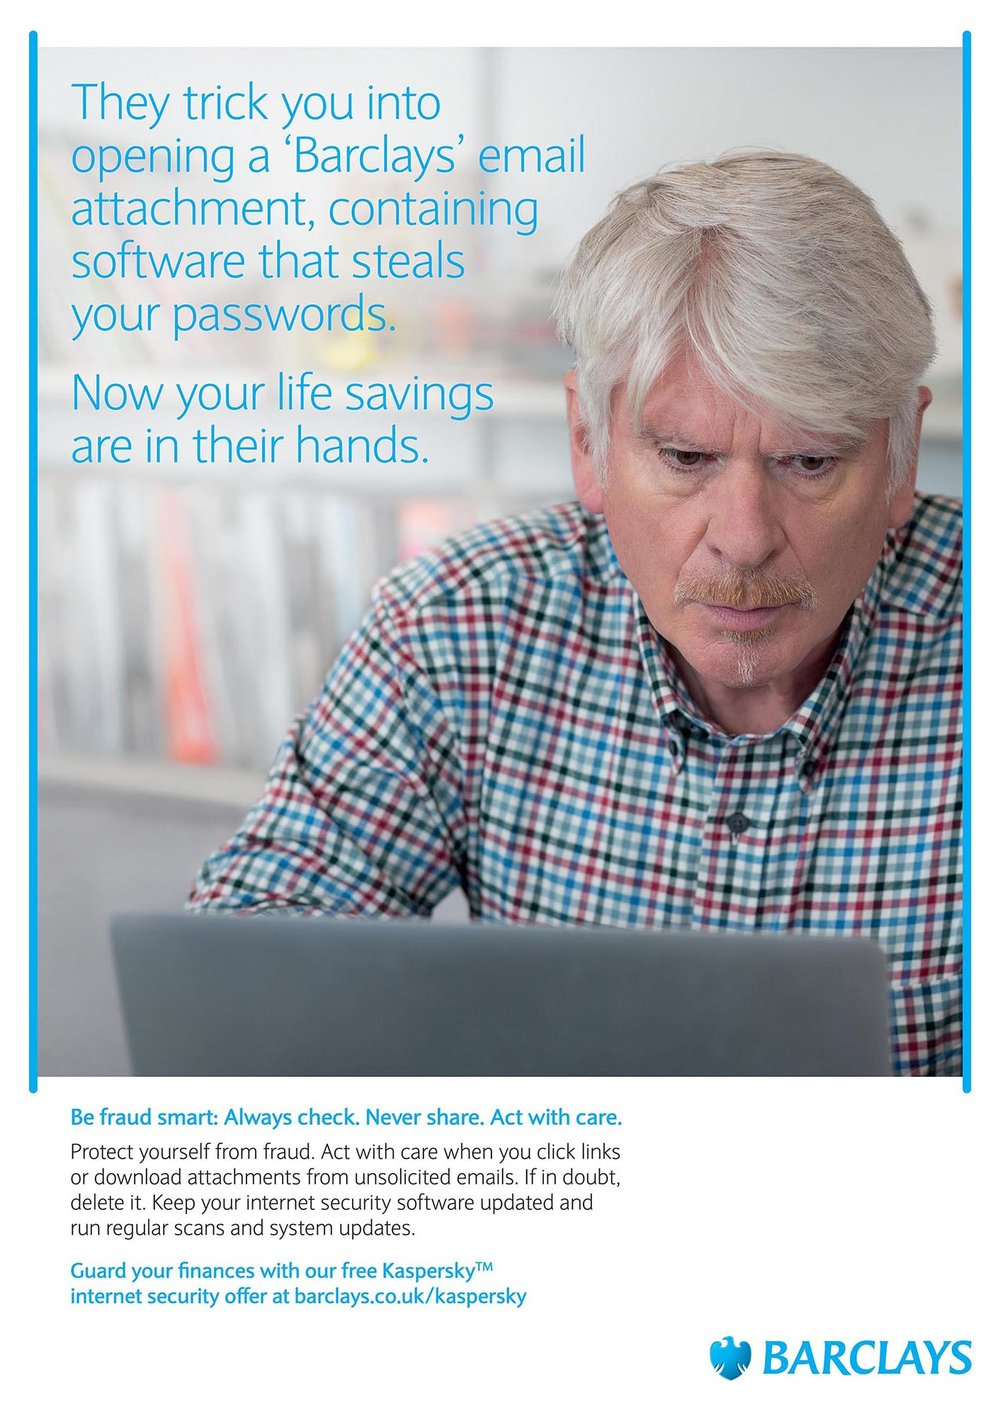 4024_A1_FRAUD_SMART_POSTER_AW03 HR-1.jpg